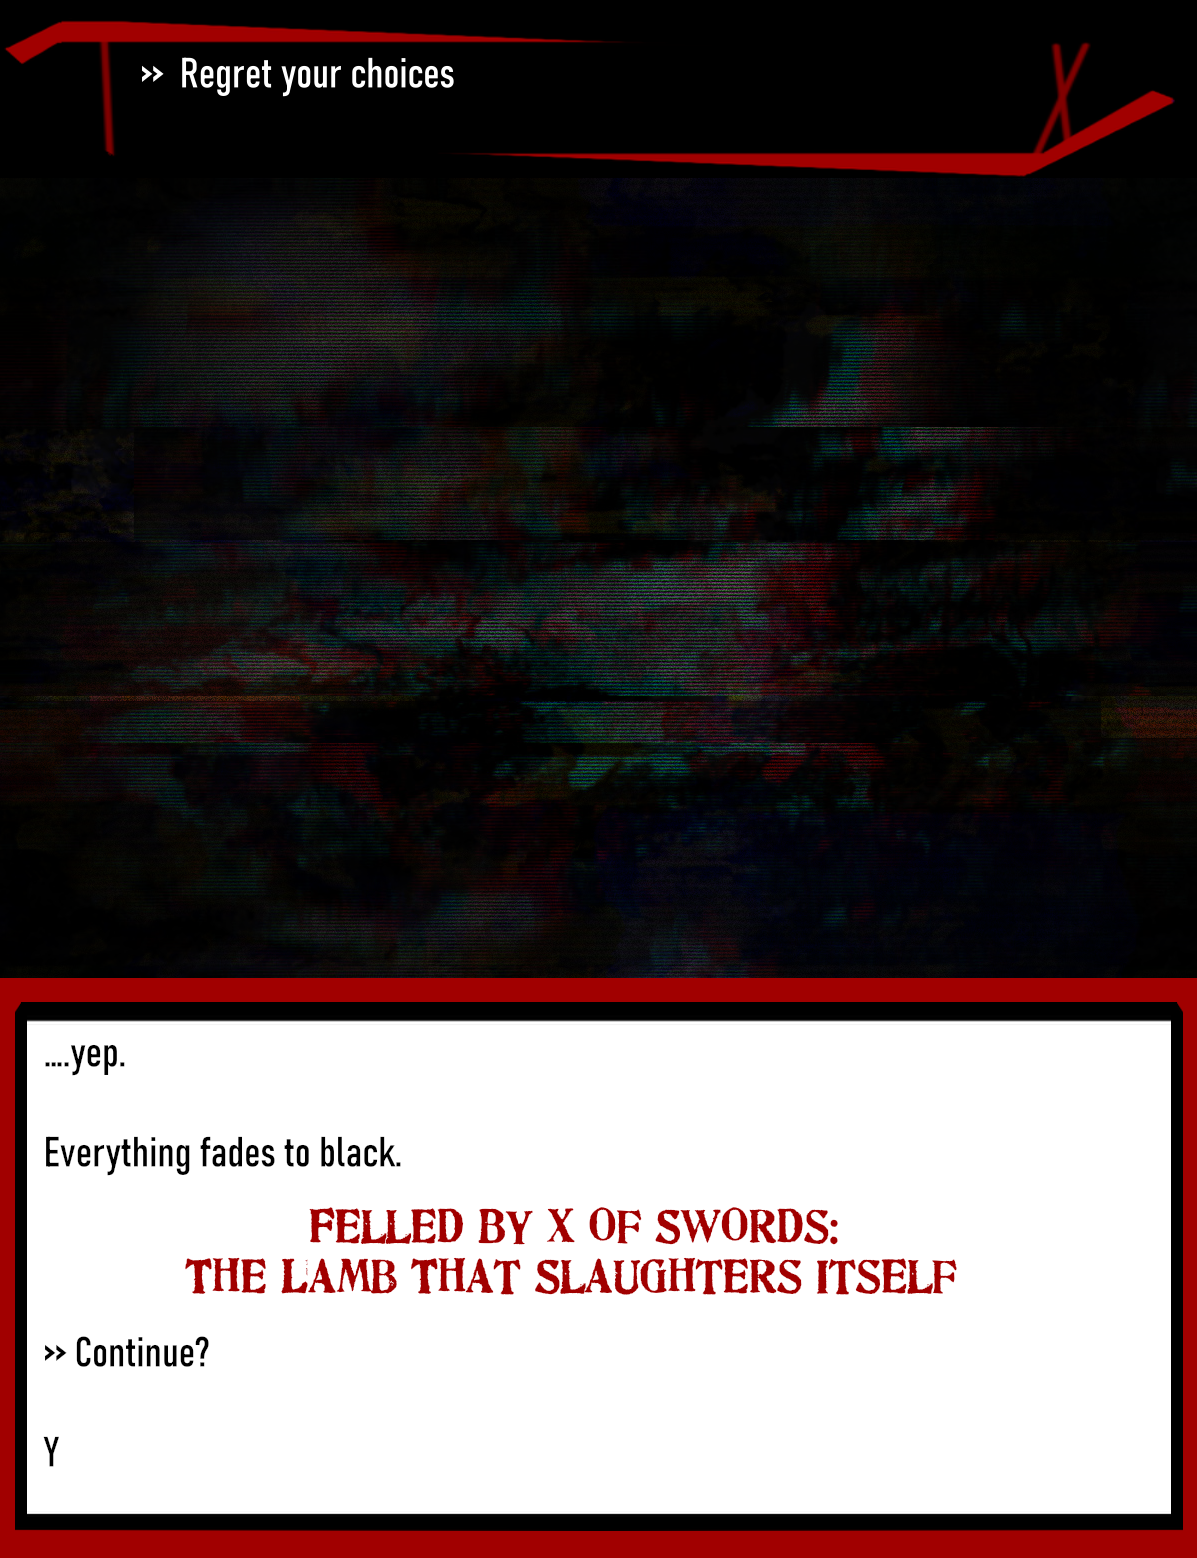 >> Regret your choices                  ...yep.   Everything fades to black.  Felled By X of Swords: The Lamb That Slaughters Itself.  >> Continue?  Y